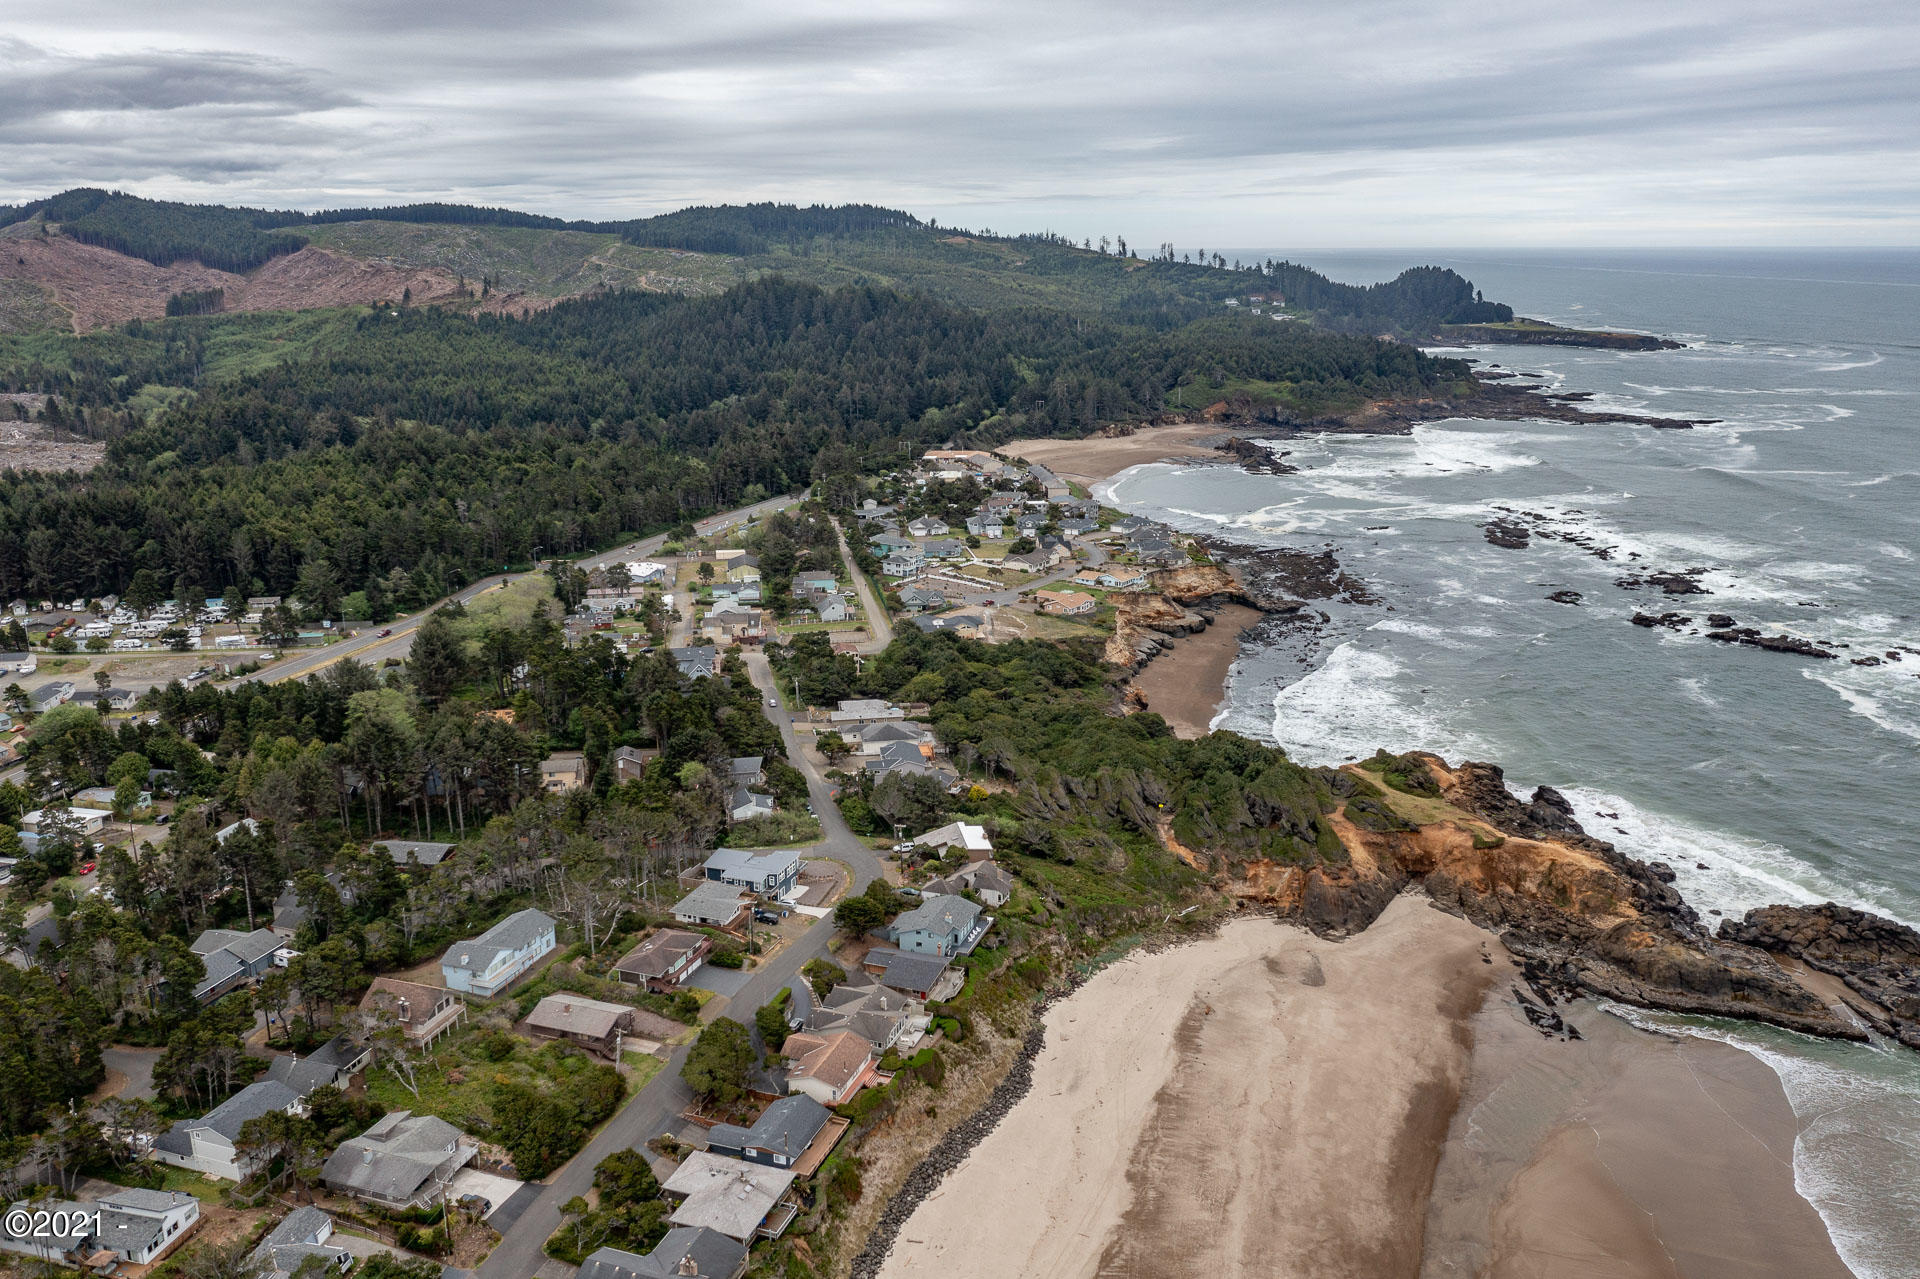 3540 Sea Mist Ave, Depoe Bay, OR 97341 - Aerial view beach